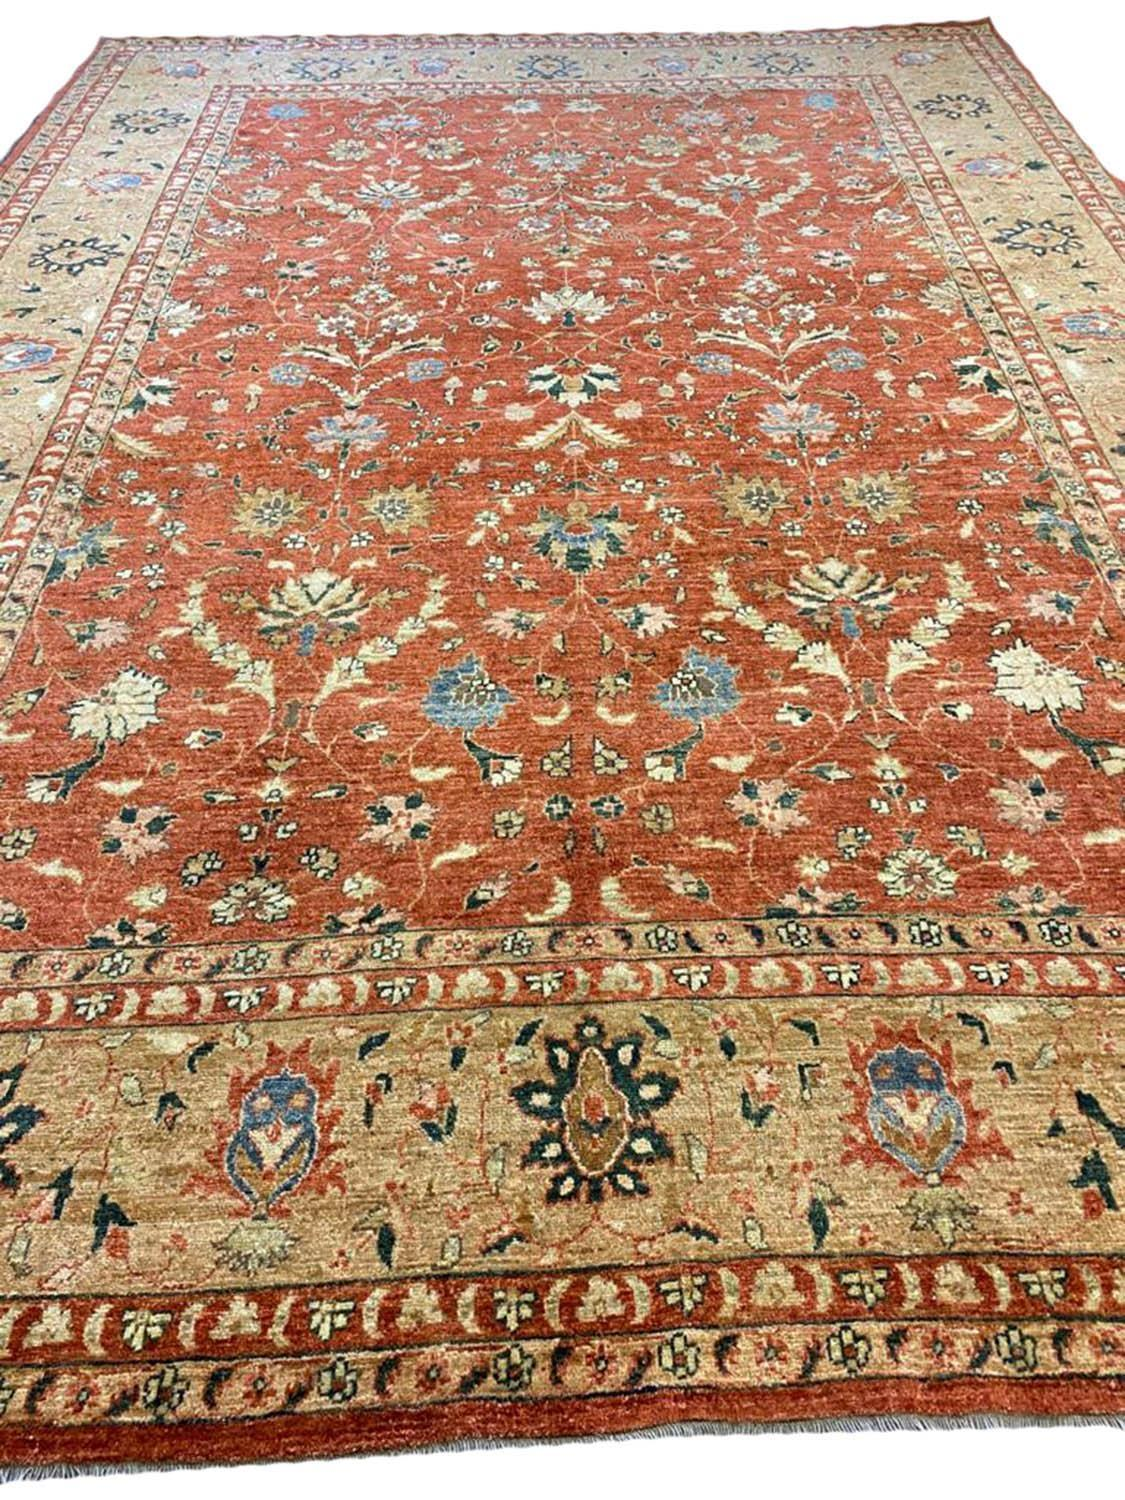 FINE BAKSHAISH DESIGN CARPET, 371cm x 273cm.